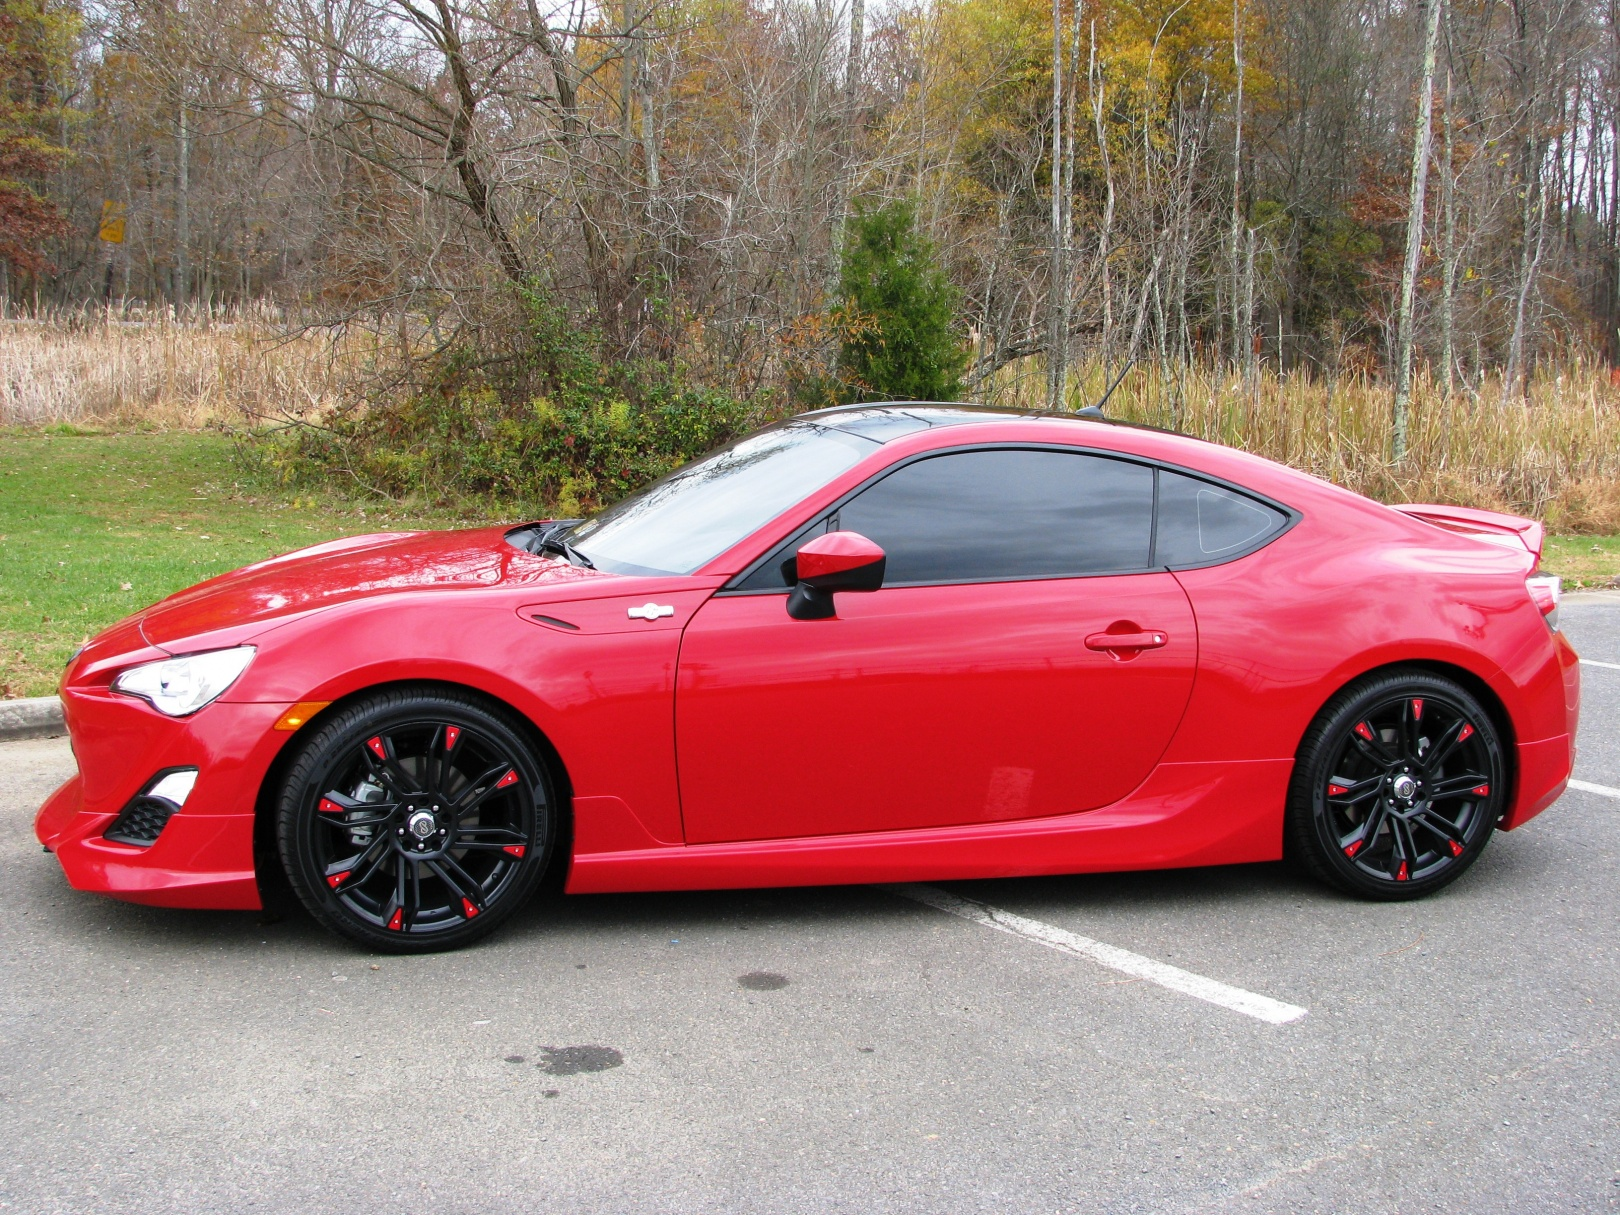 2013 scion fr s for sale upgrades for days scion fr s forum subaru brz forum toyota 86. Black Bedroom Furniture Sets. Home Design Ideas